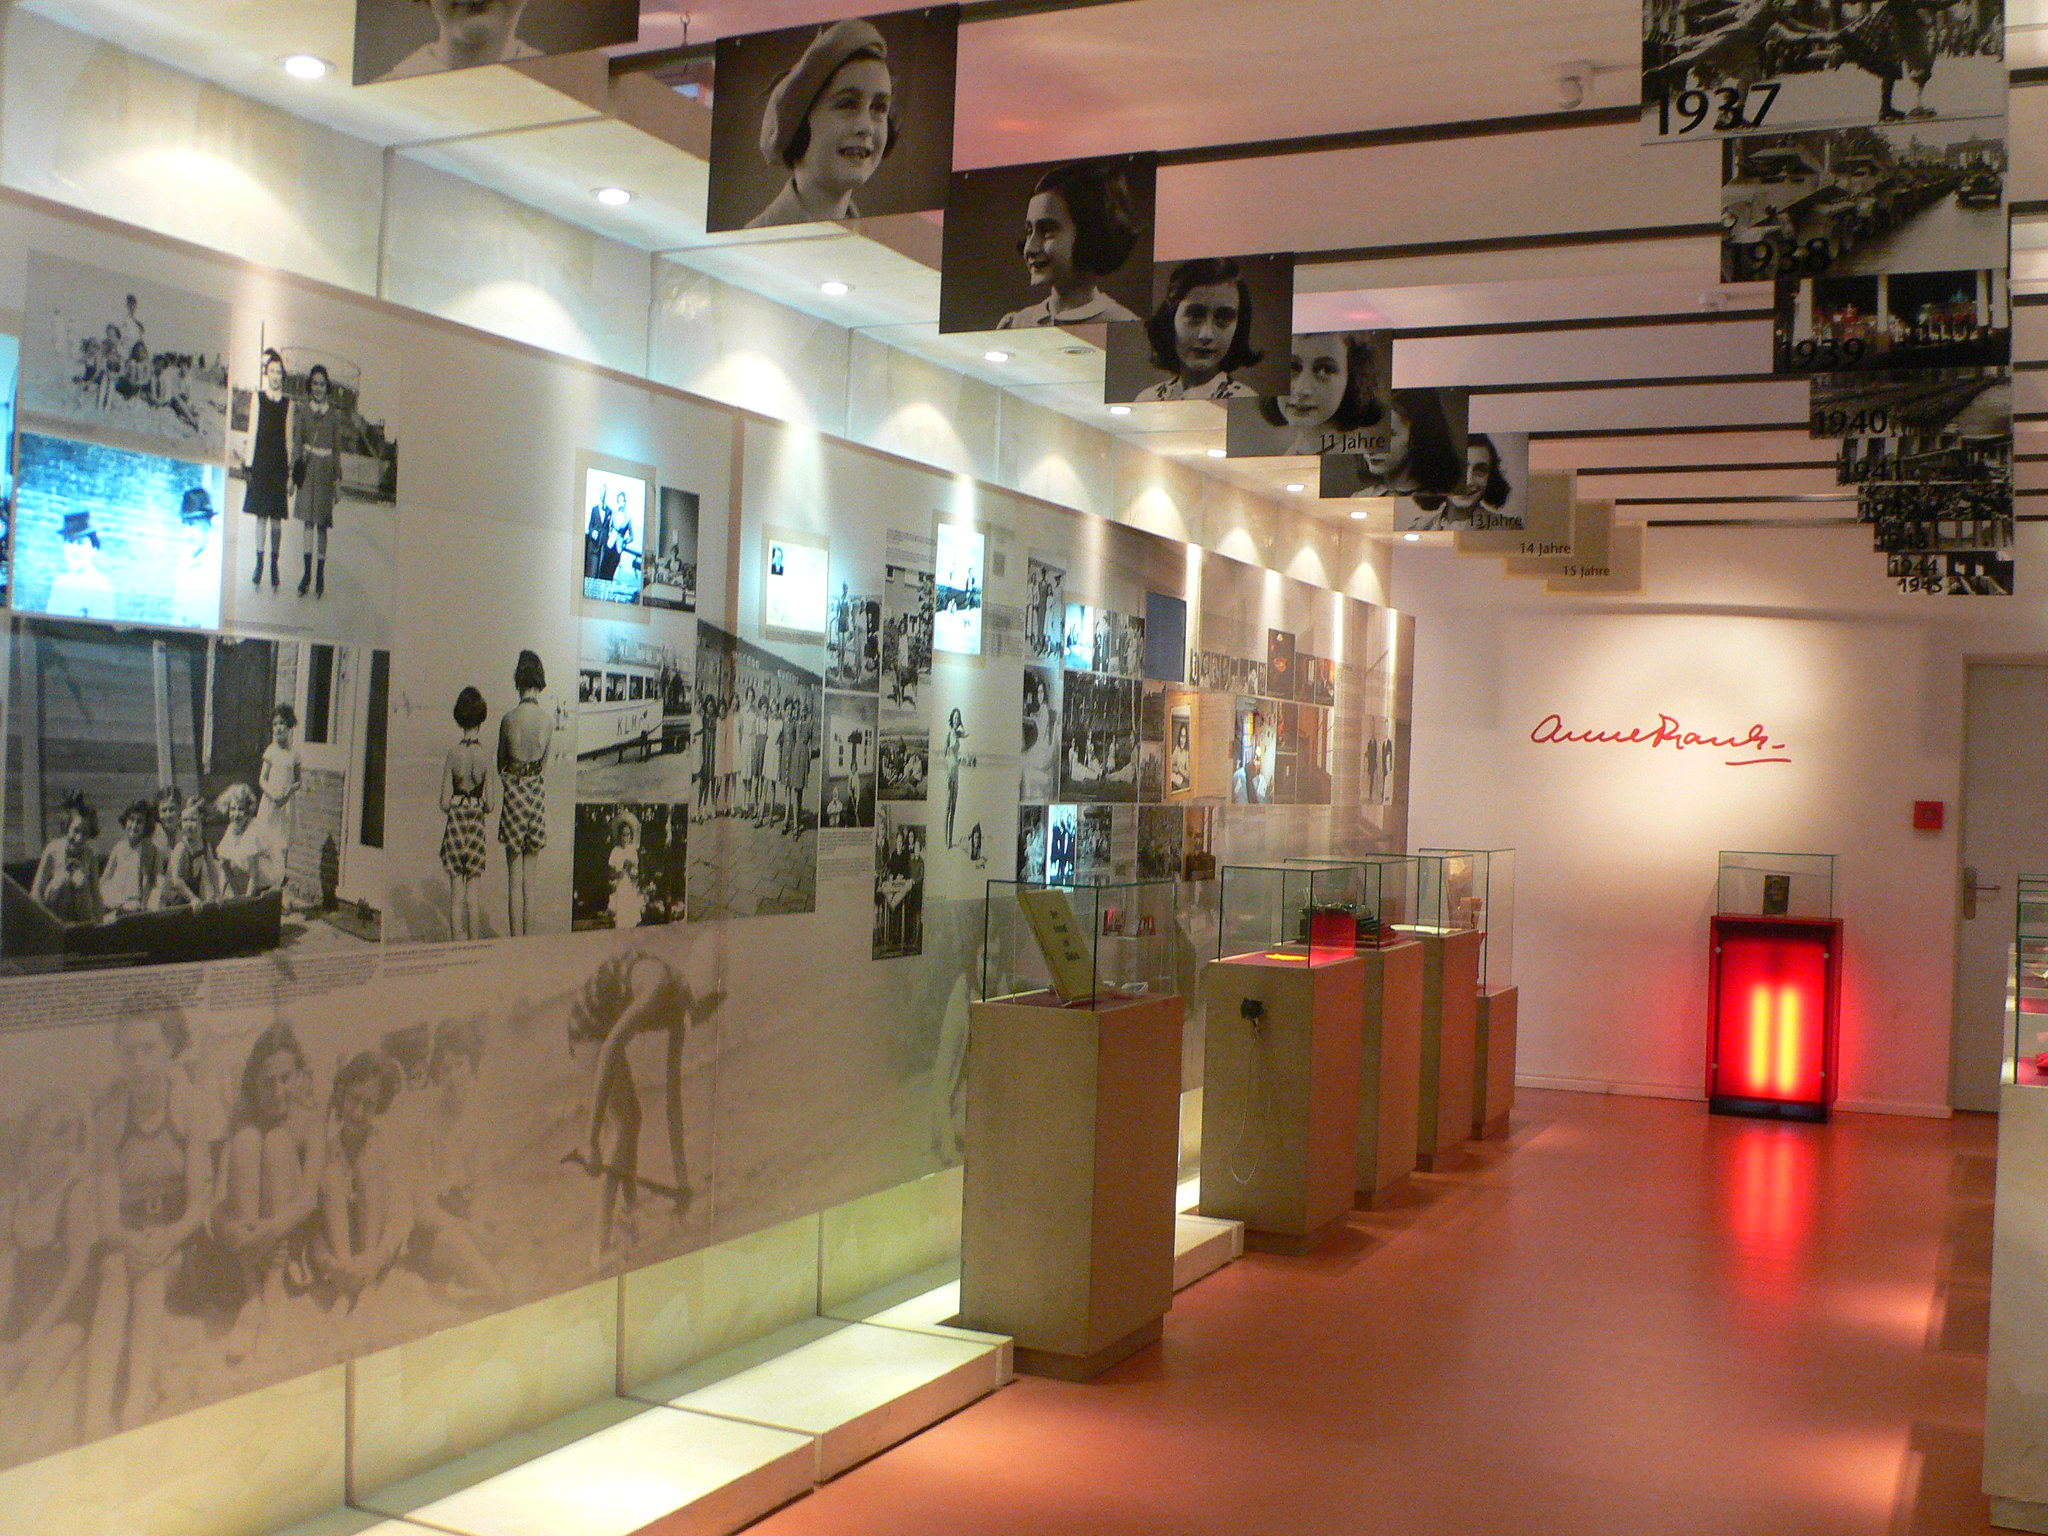 Inside Ann Frank Museum with photos of Ann in a white room